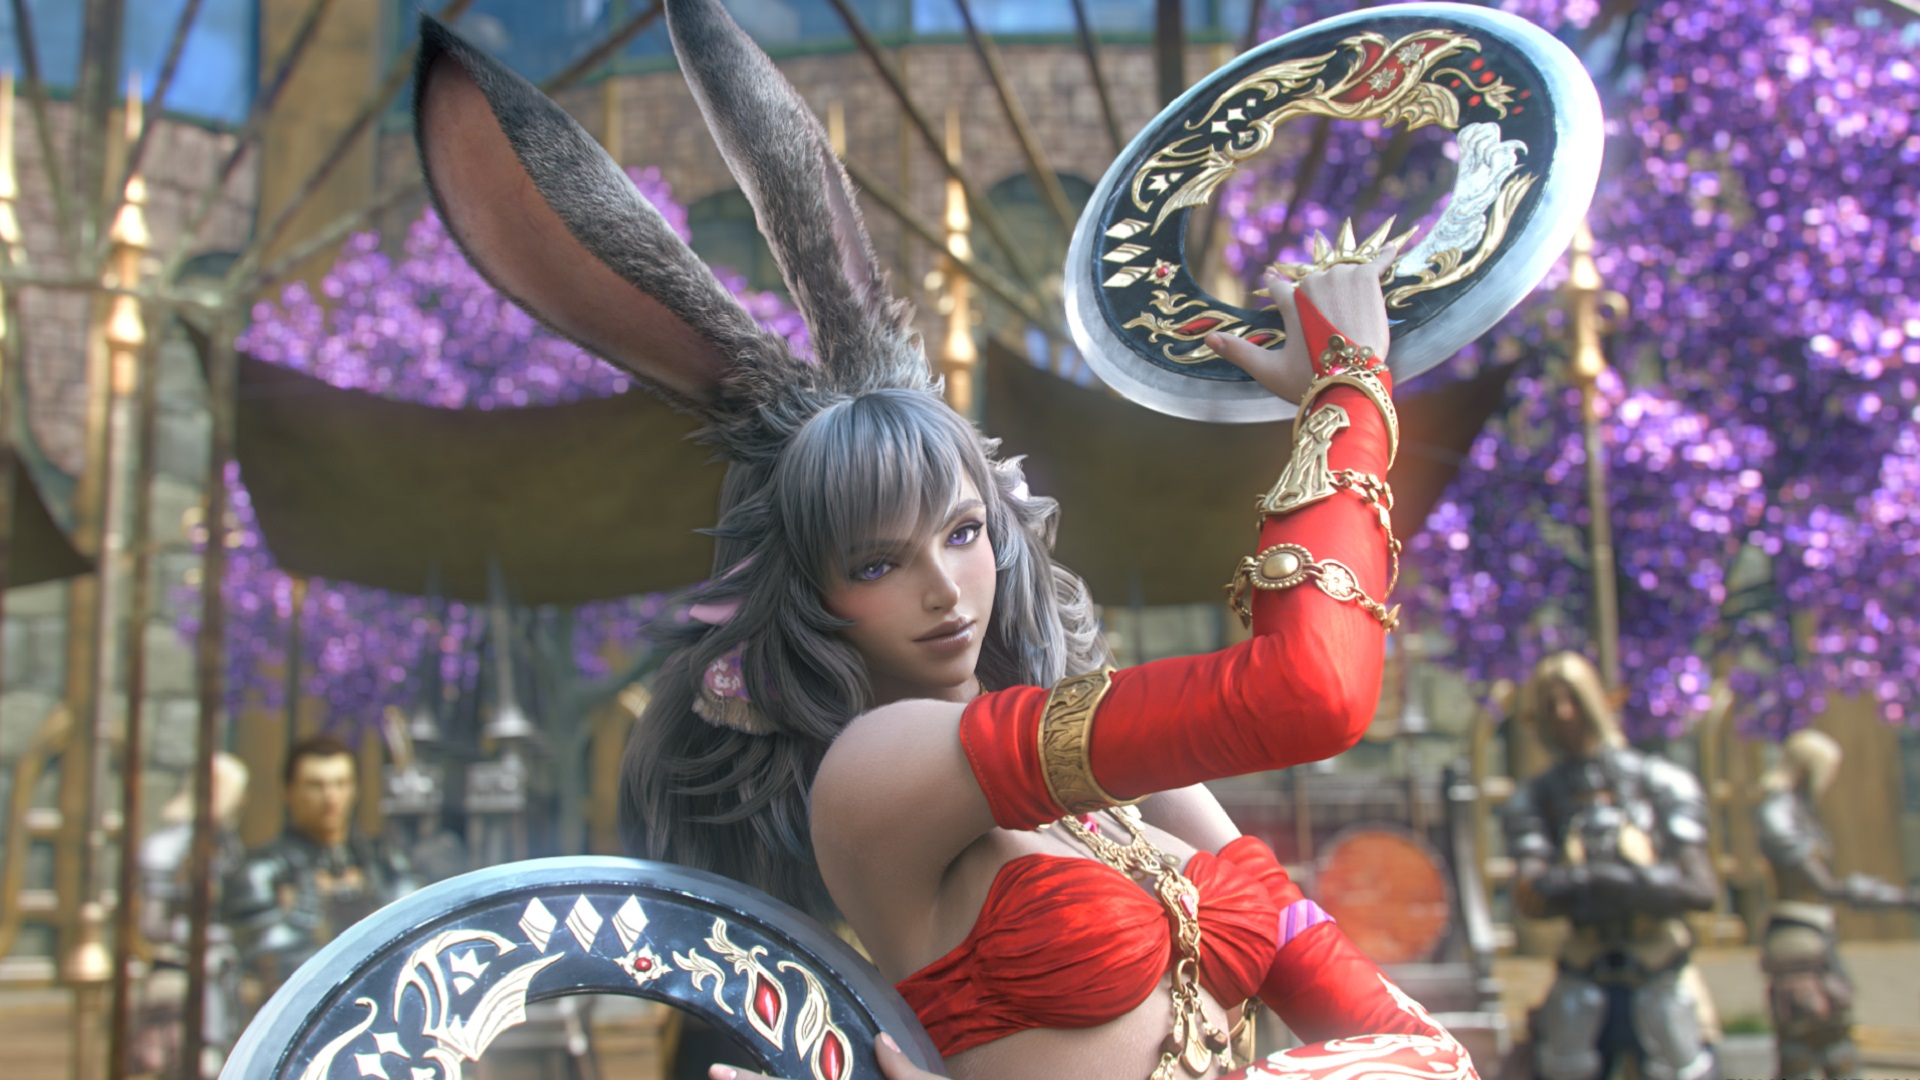 Final Fantasy XIV guide: Where to find the new Gunbreaker and Dancer